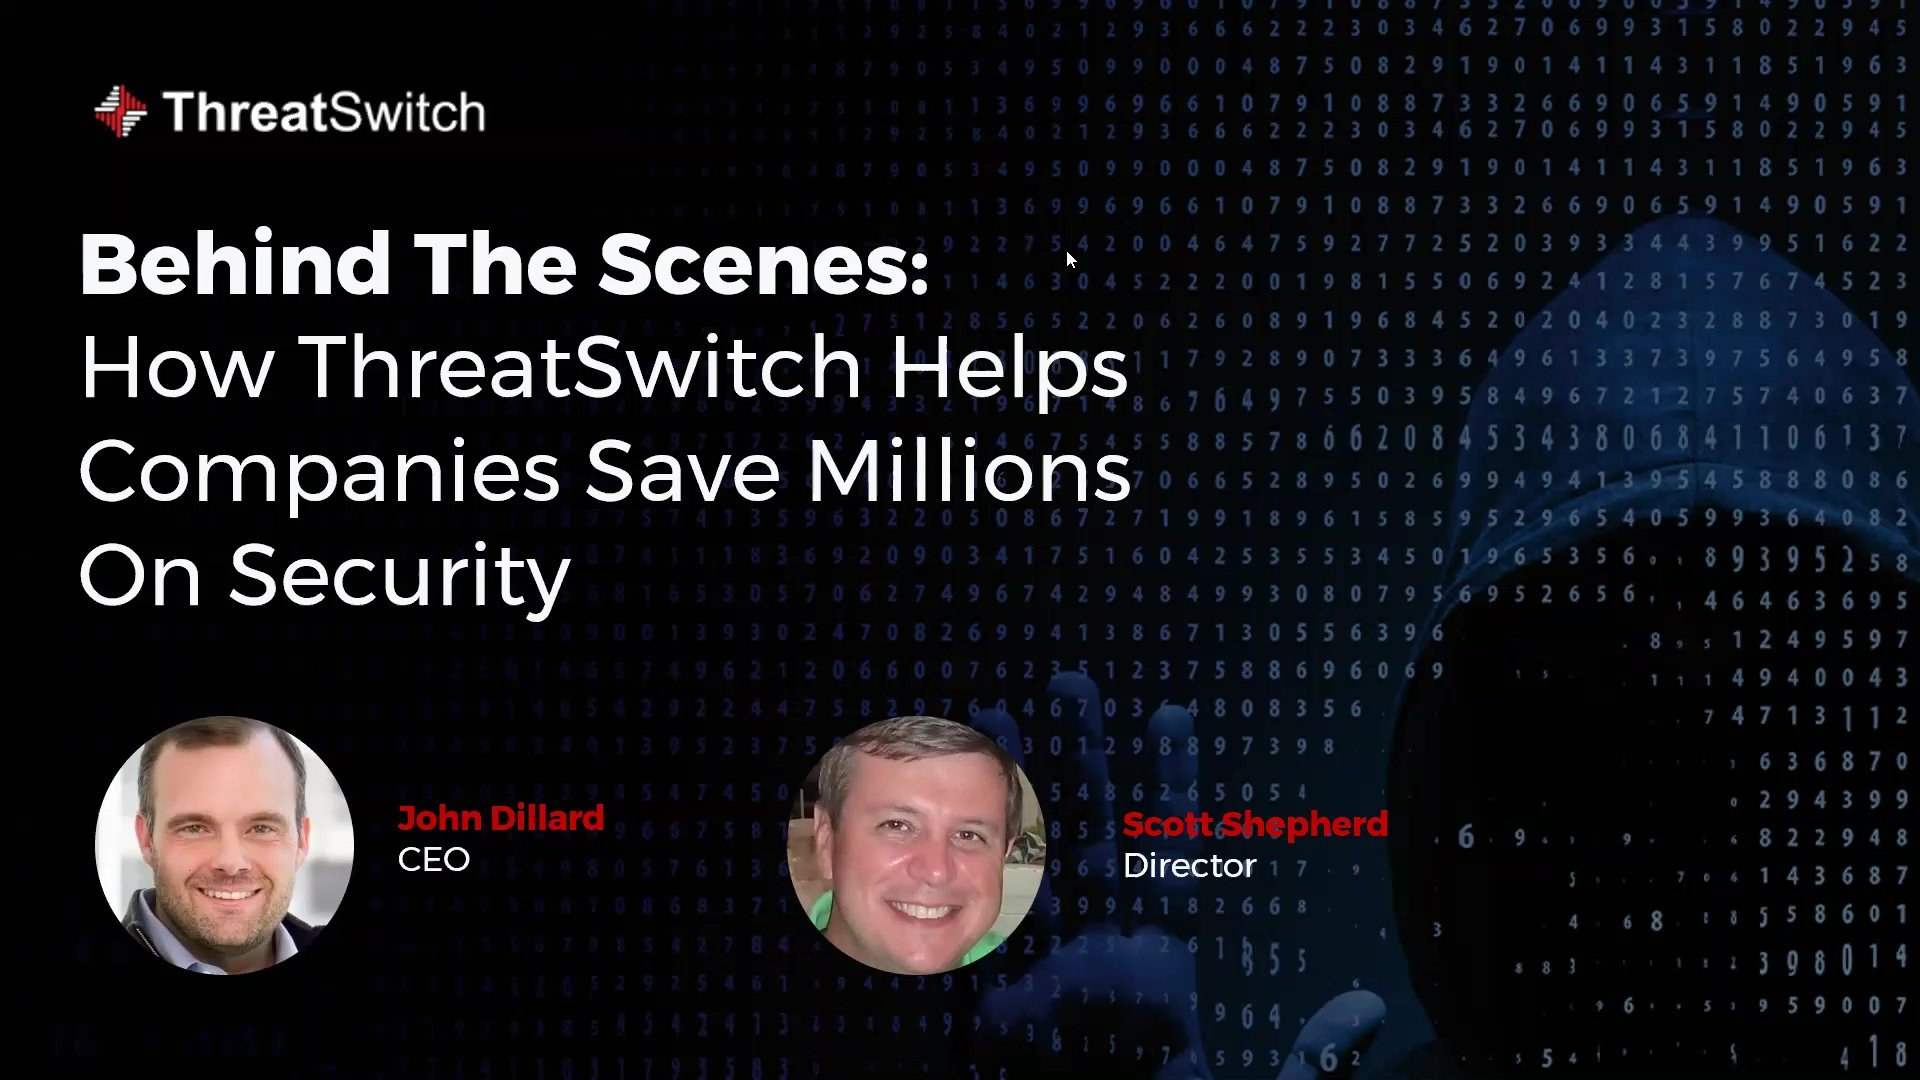 Behind The Scenes: How ThreatSwitch Helps Companies Save Millions On Security